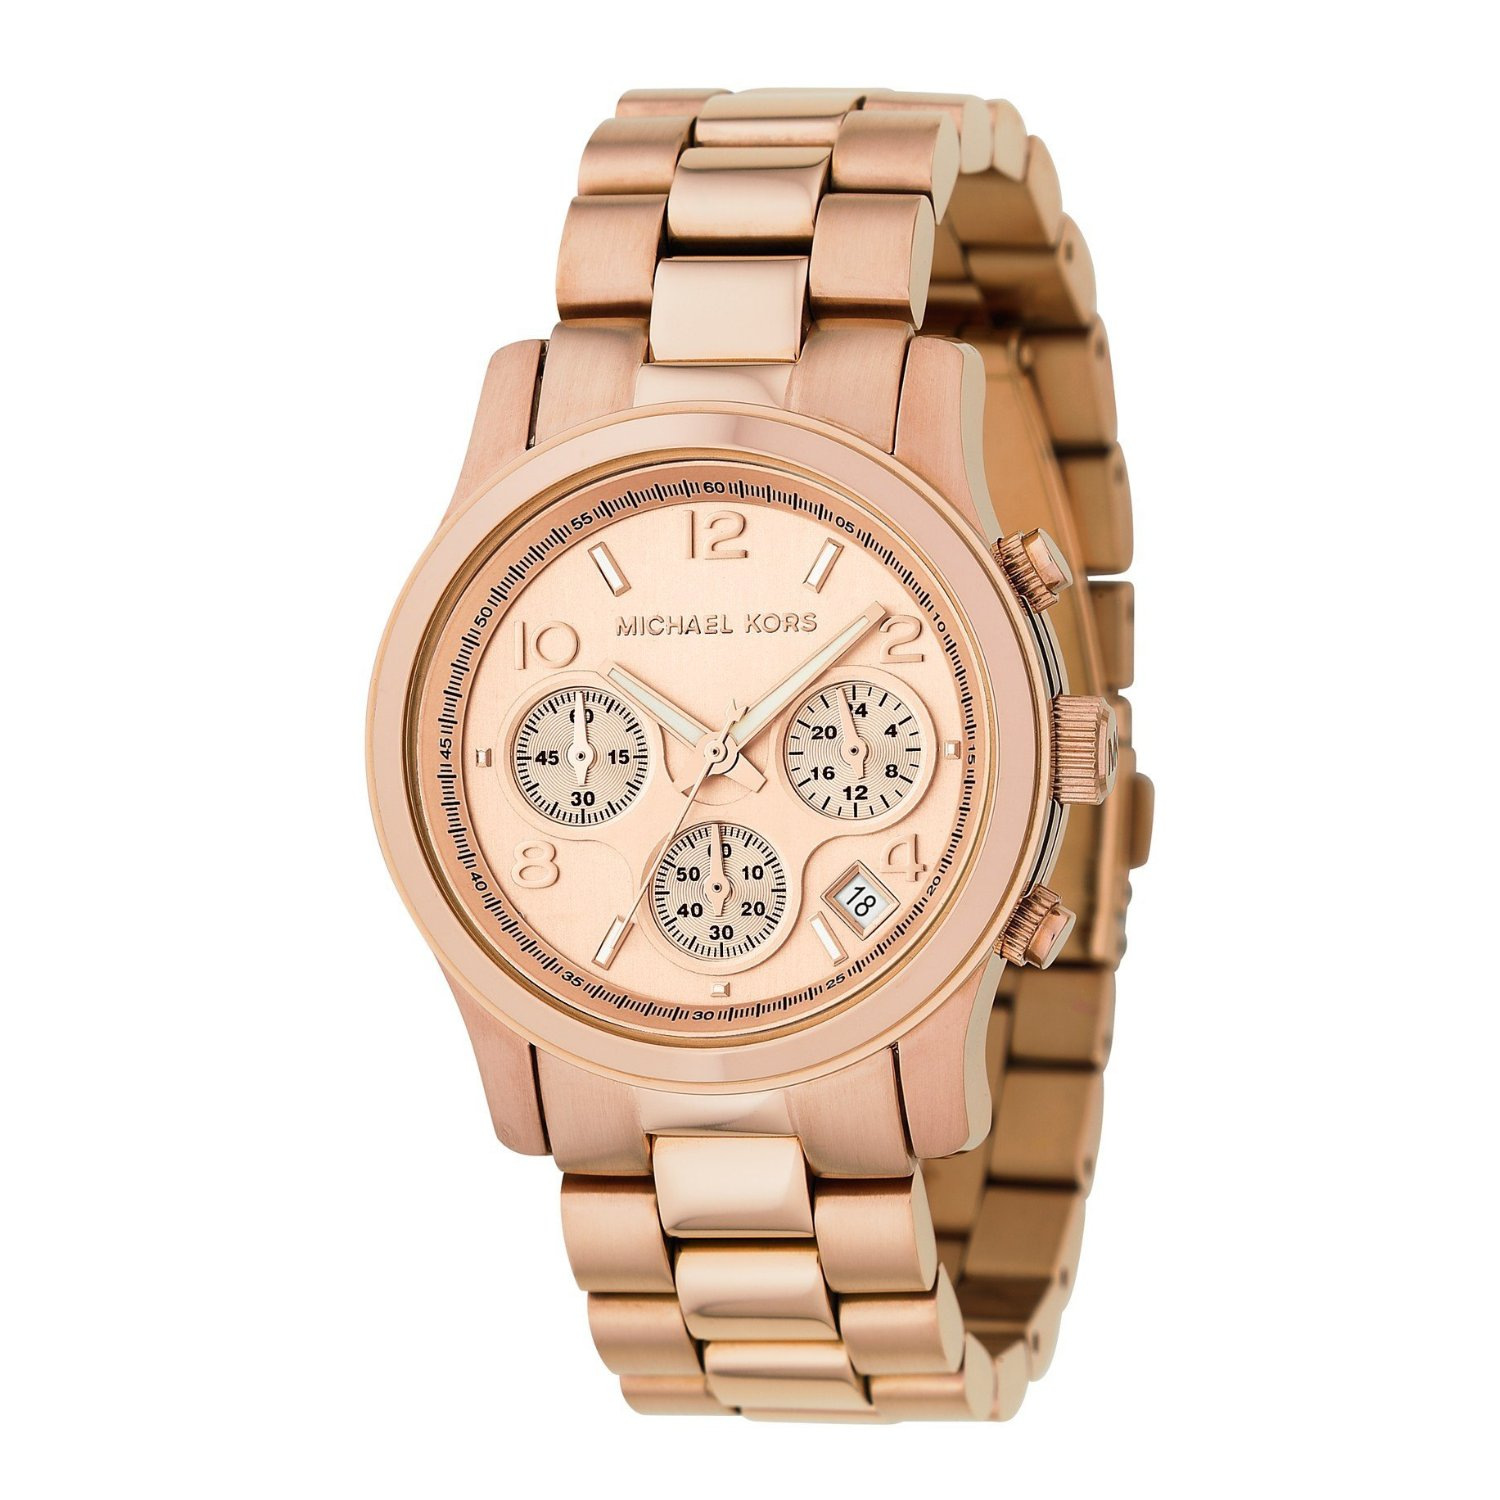 michael kors watches women rose gold plated bracelet. Black Bedroom Furniture Sets. Home Design Ideas